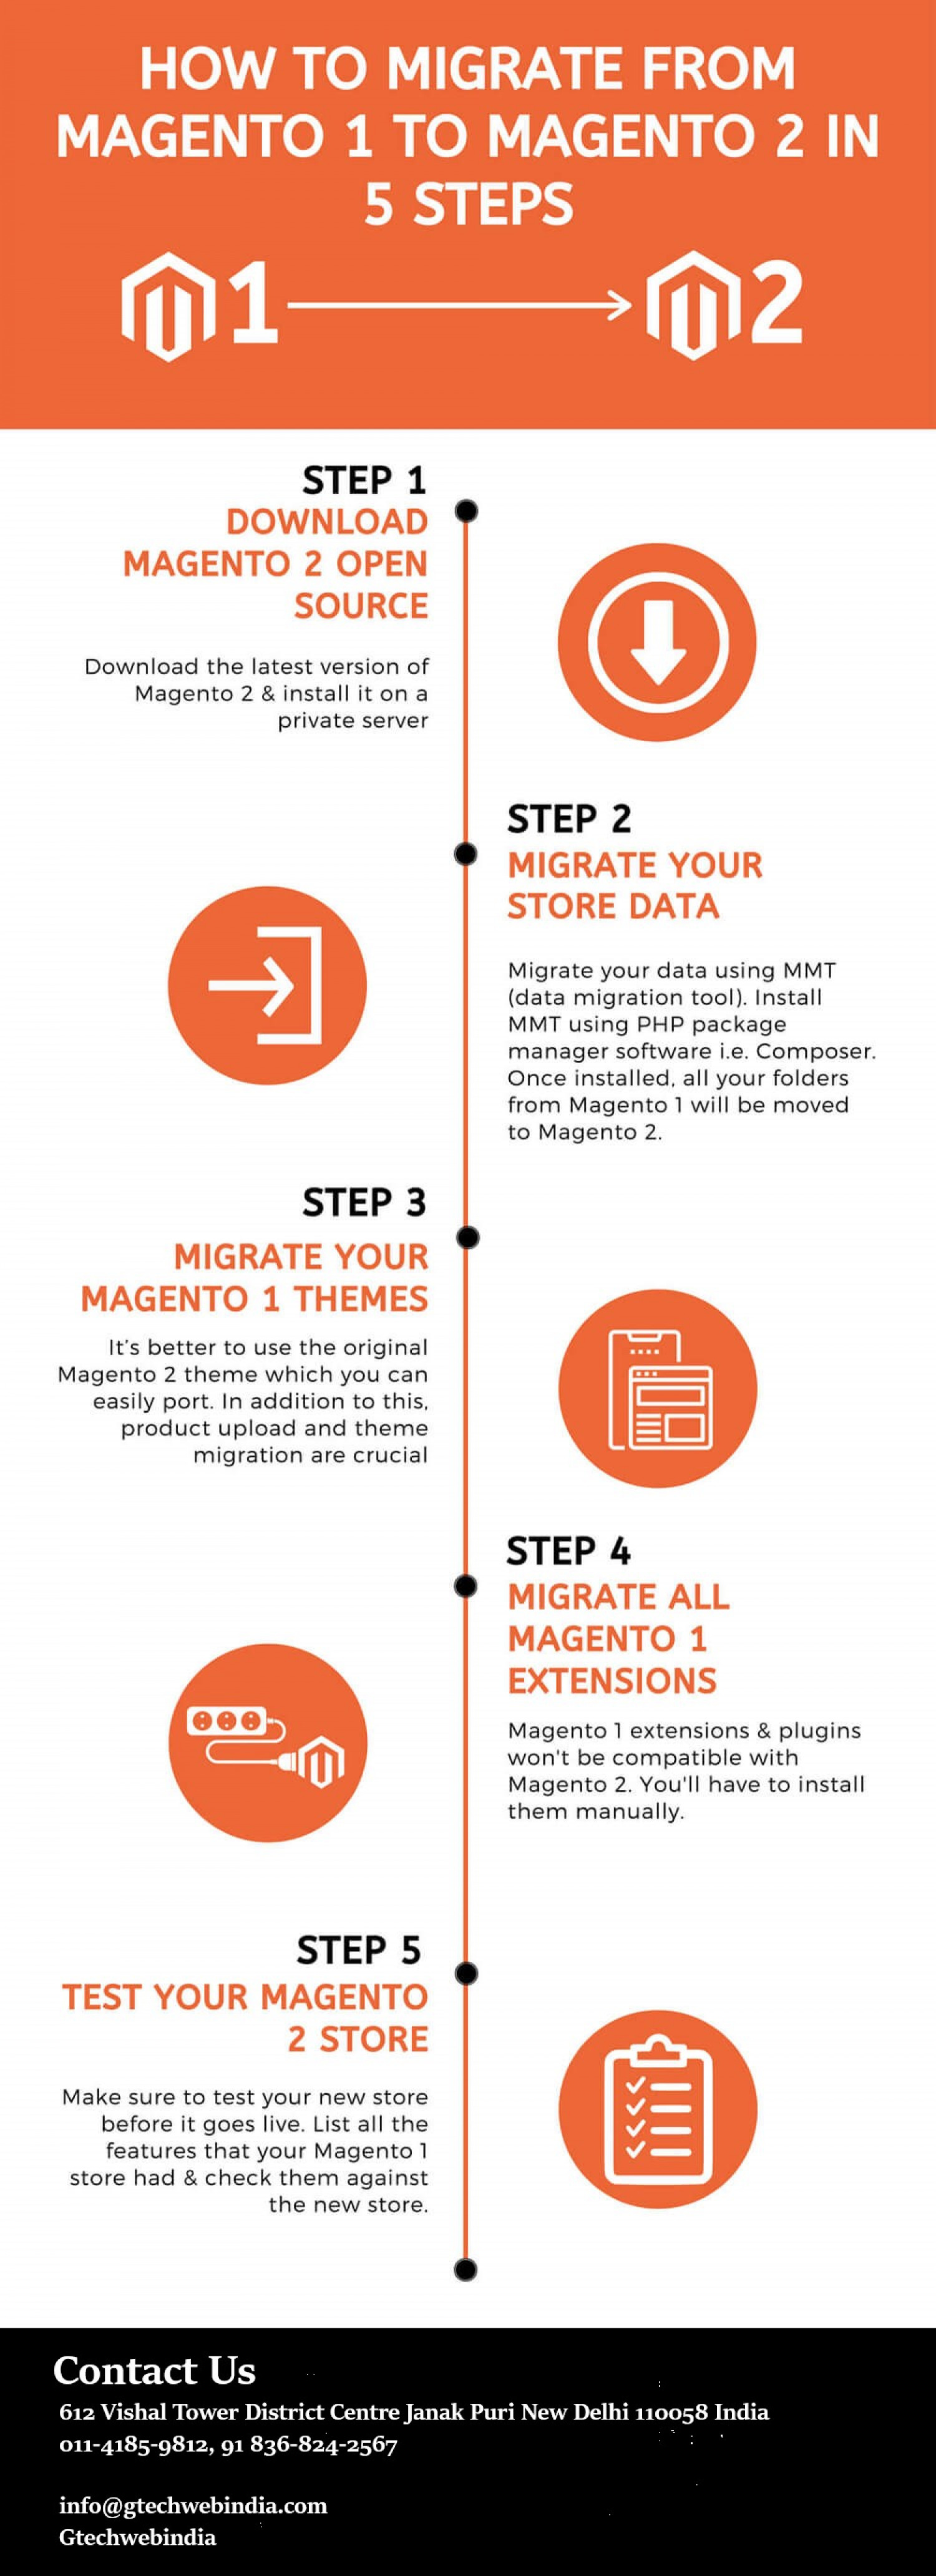 Magento Data Entry Services Doesn't Have to Be Hard. Read These Infographic